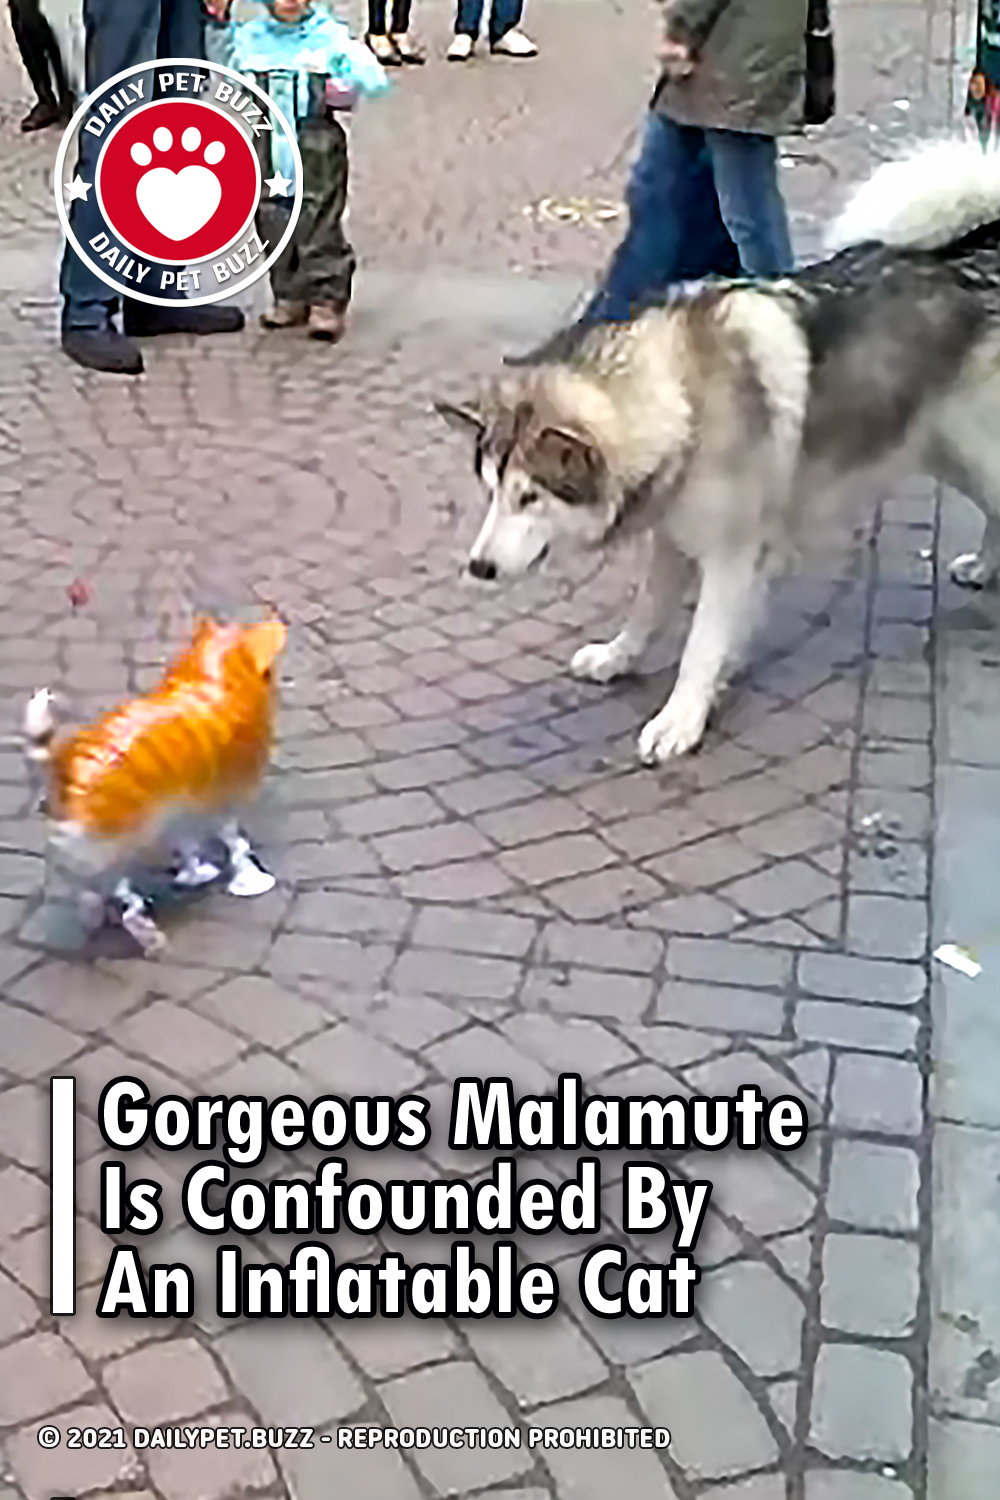 Gorgeous Malamute Is Confounded By An Inflatable Cat